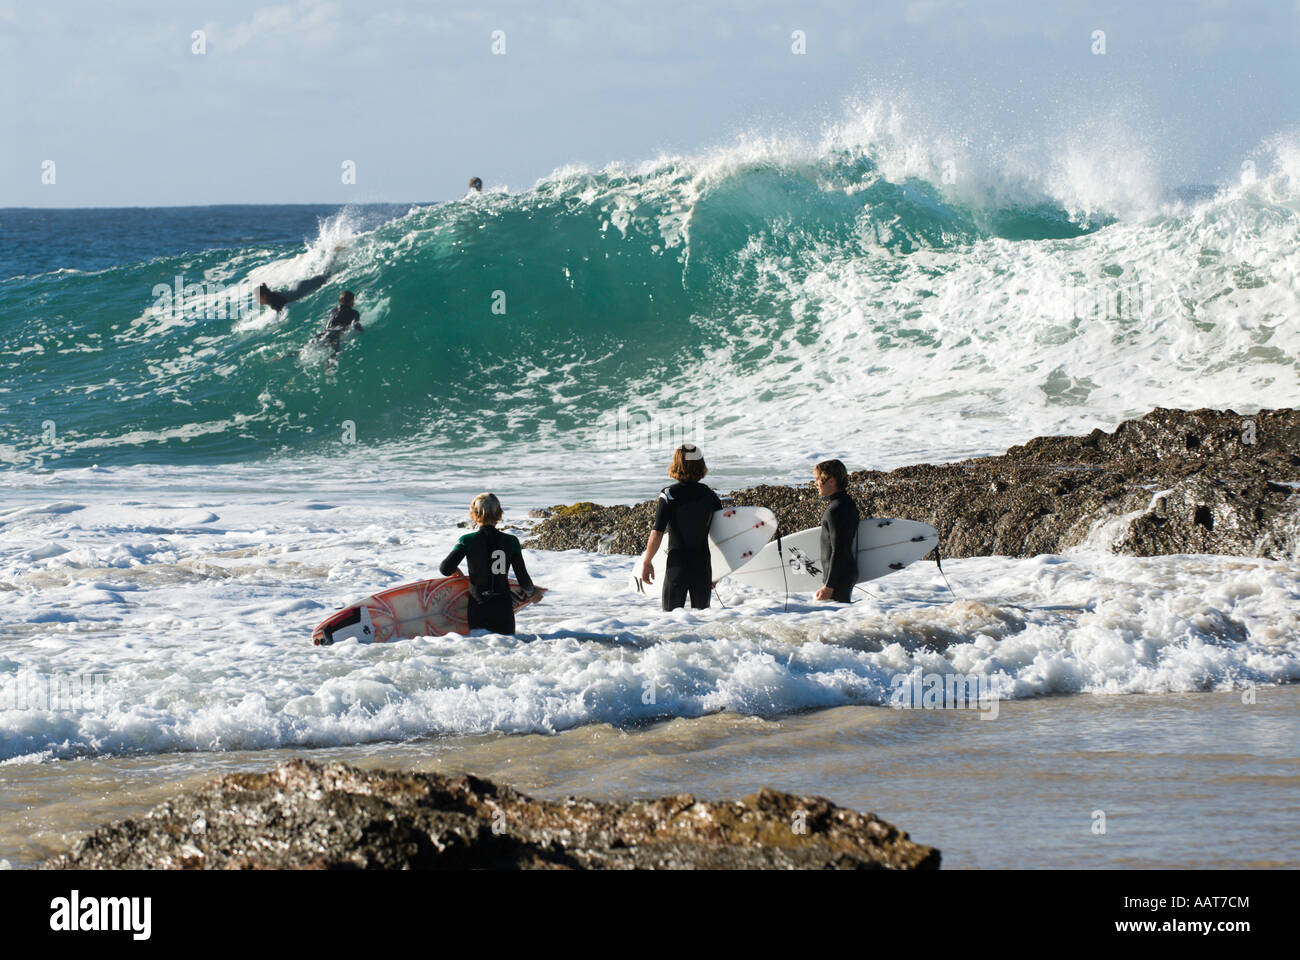 Surfing at Snapper Rocks/Superbank, Coolangatta, Gold Coast, Queensland, Australia Stock Photo